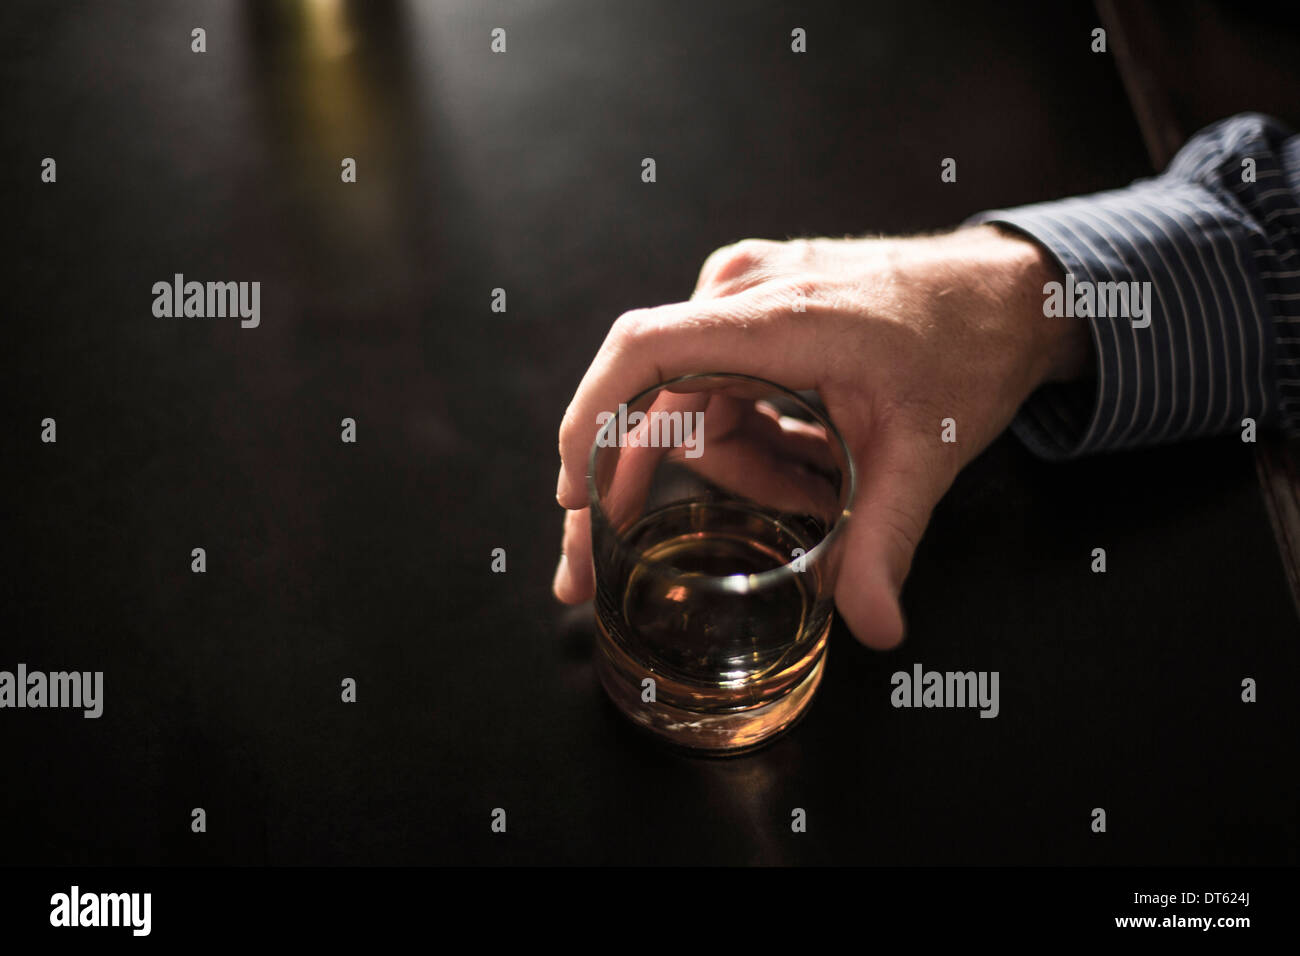 Close up of solitary man avec verre au bar Photo Stock